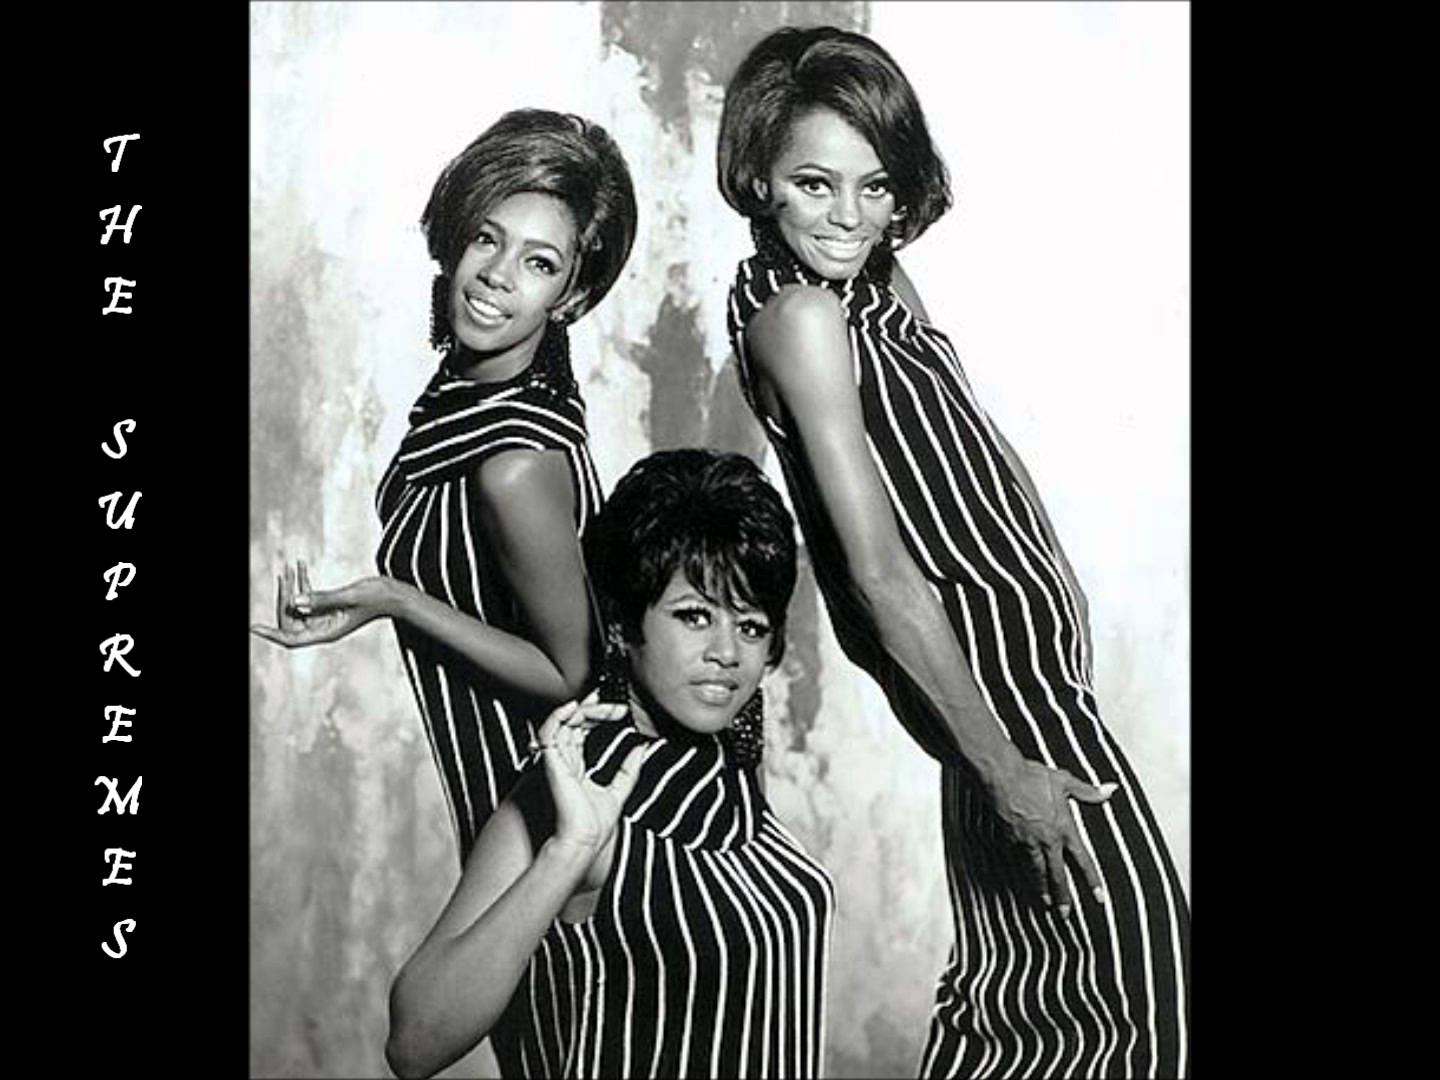 diana ross the supremes stop in the name of love star 95 diana ross the supremes stop in